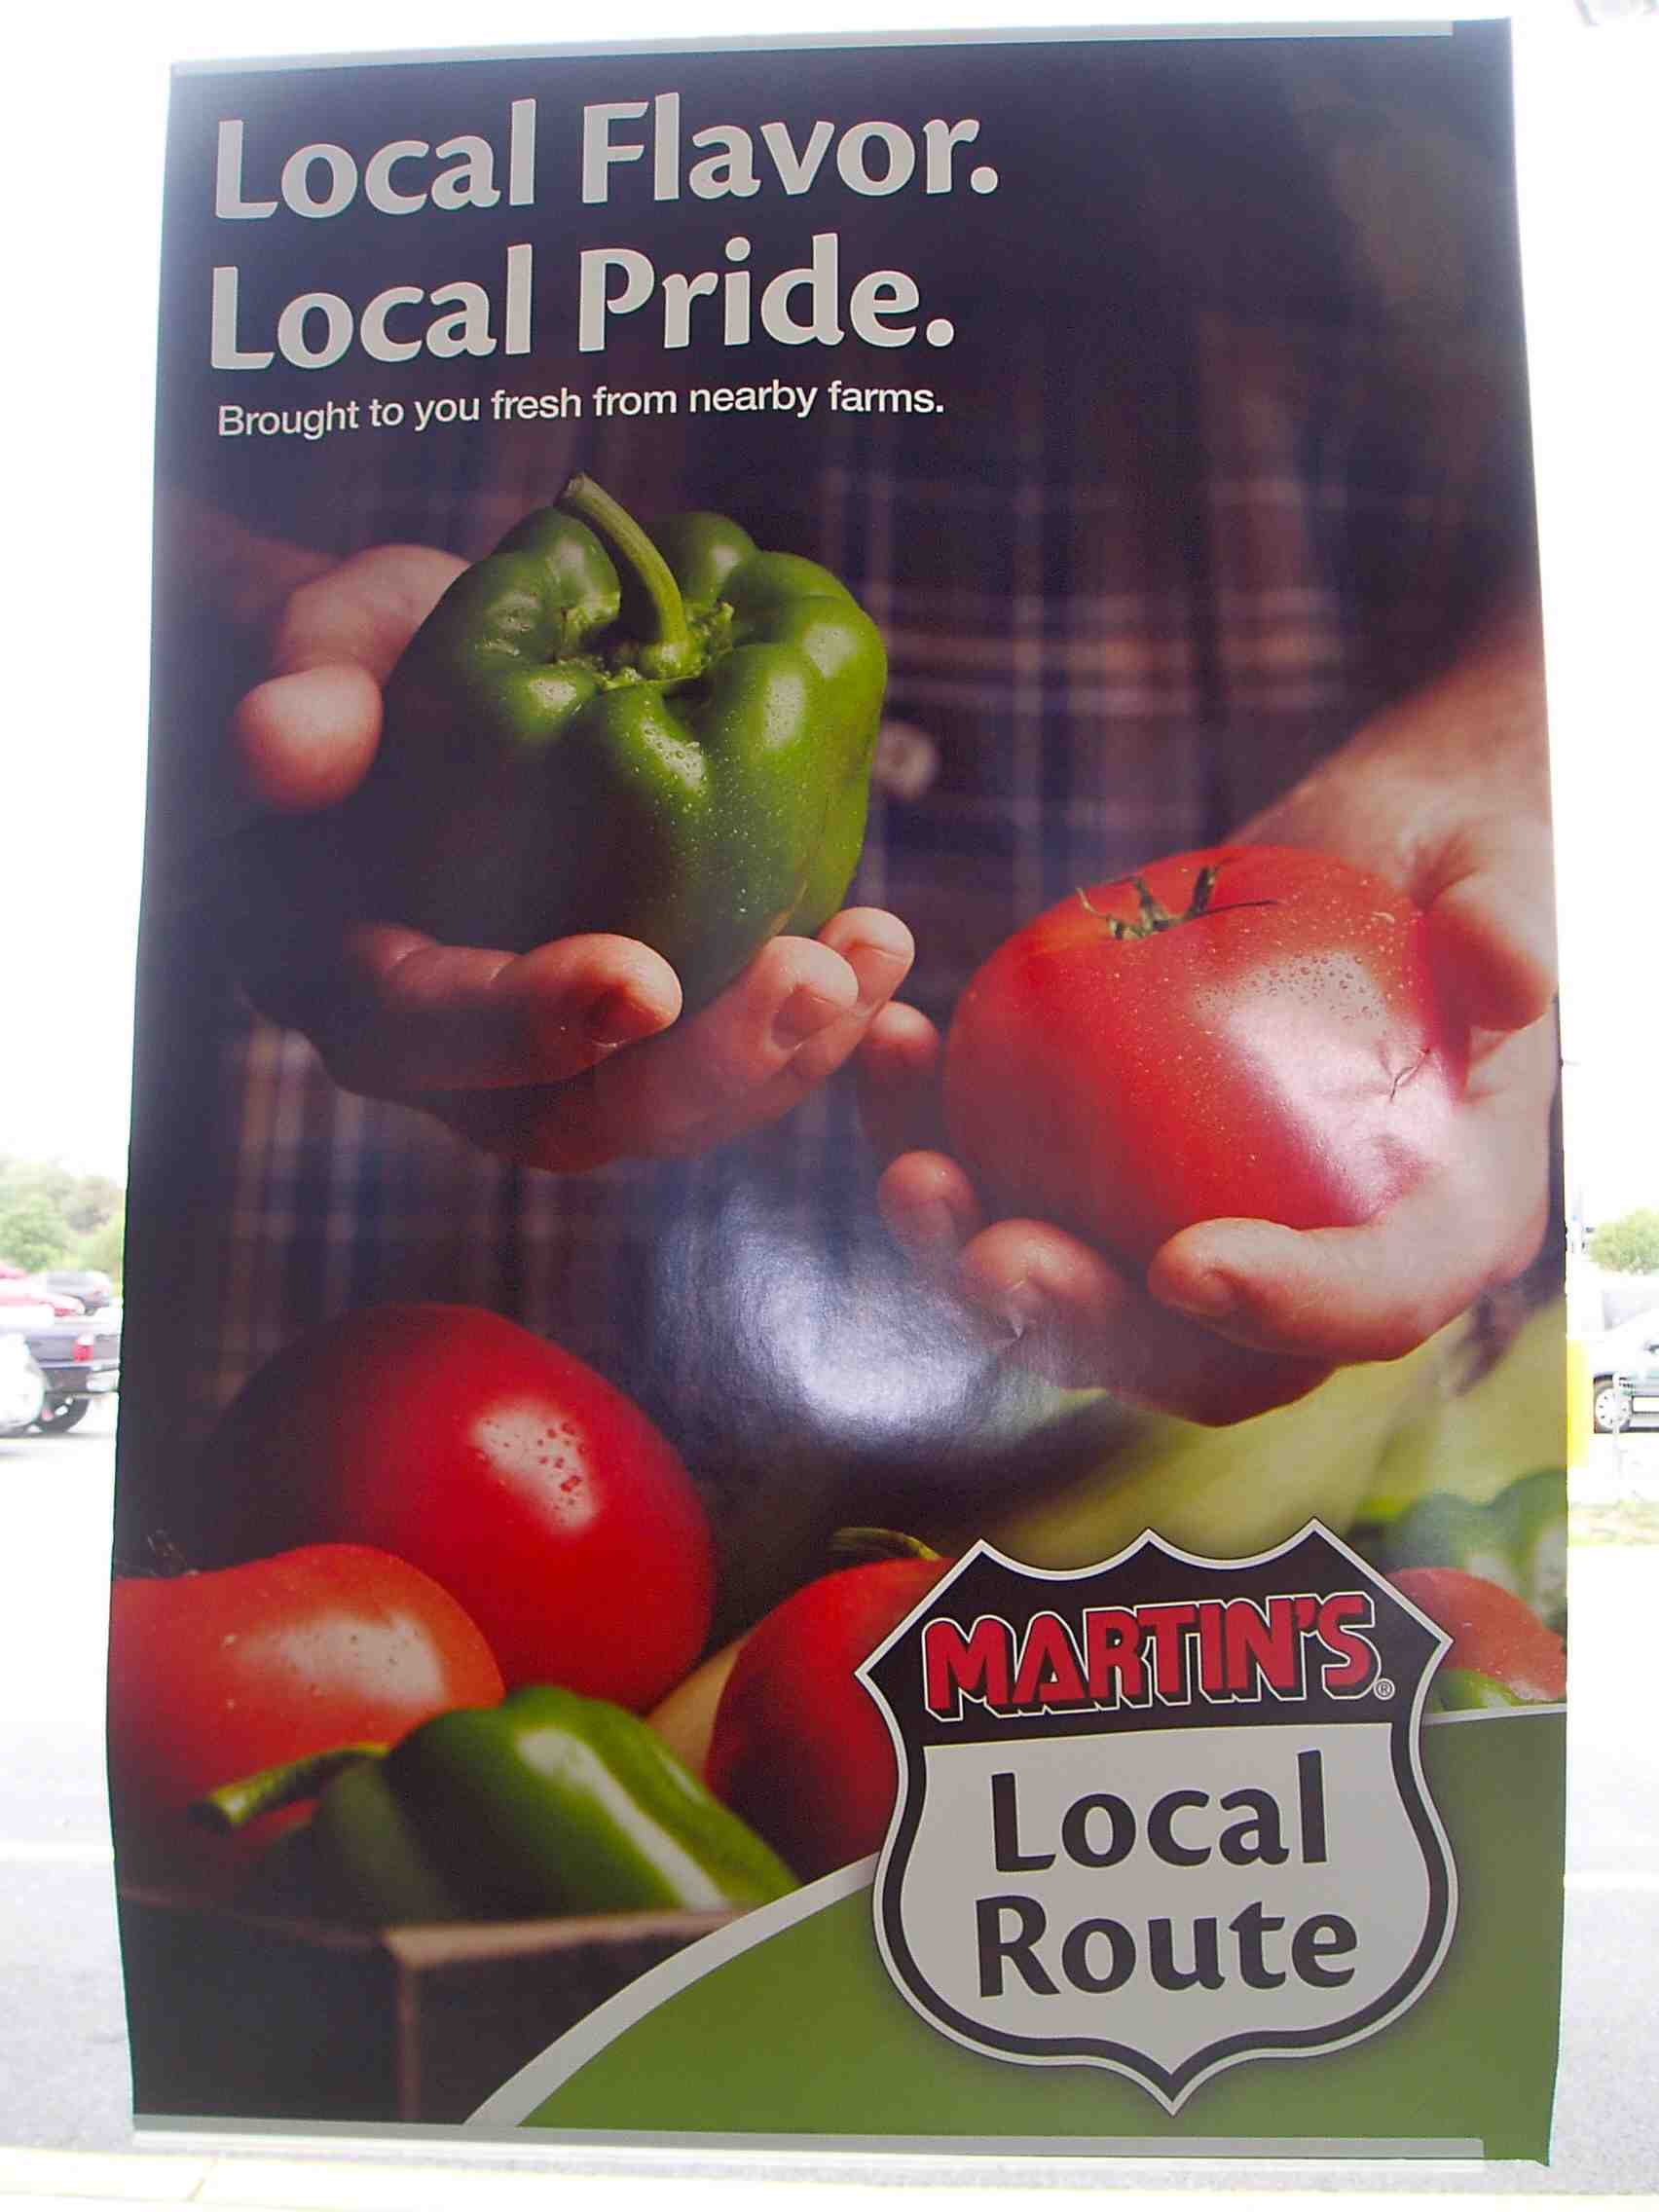 This is a promotional poster for locally raised produce at a grocery store near my farm.  I hope it succeeds.